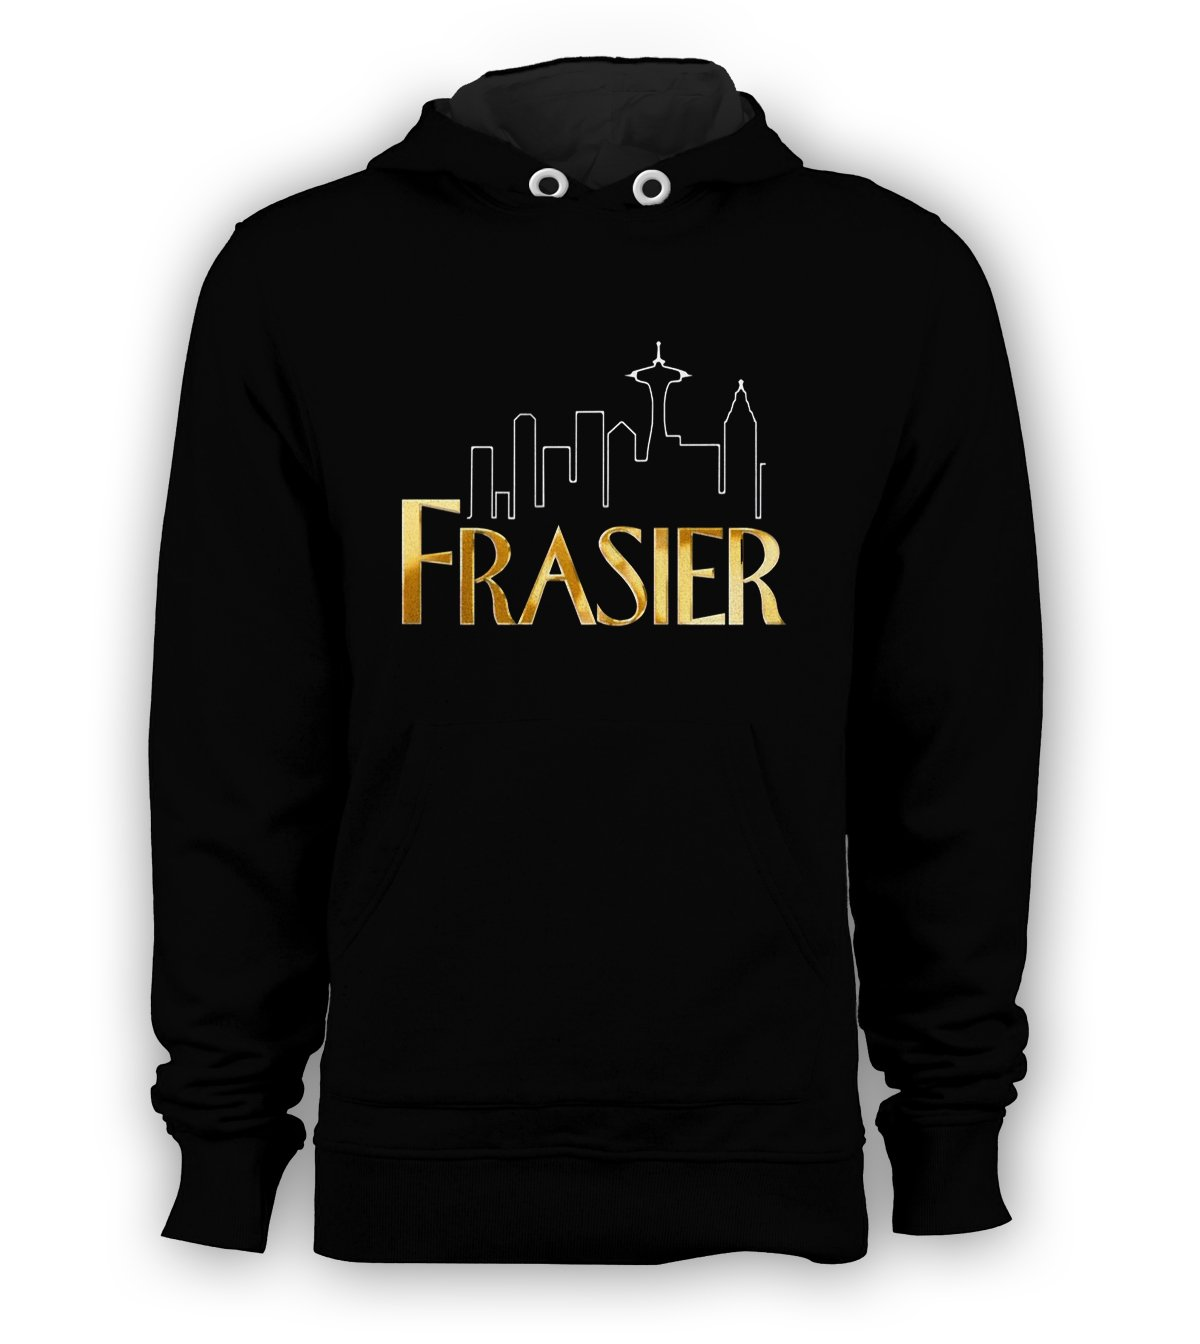 Frasier Sitcom NBC Pullover Hoodie Men Sweatshirts Size S to 3XL New Black